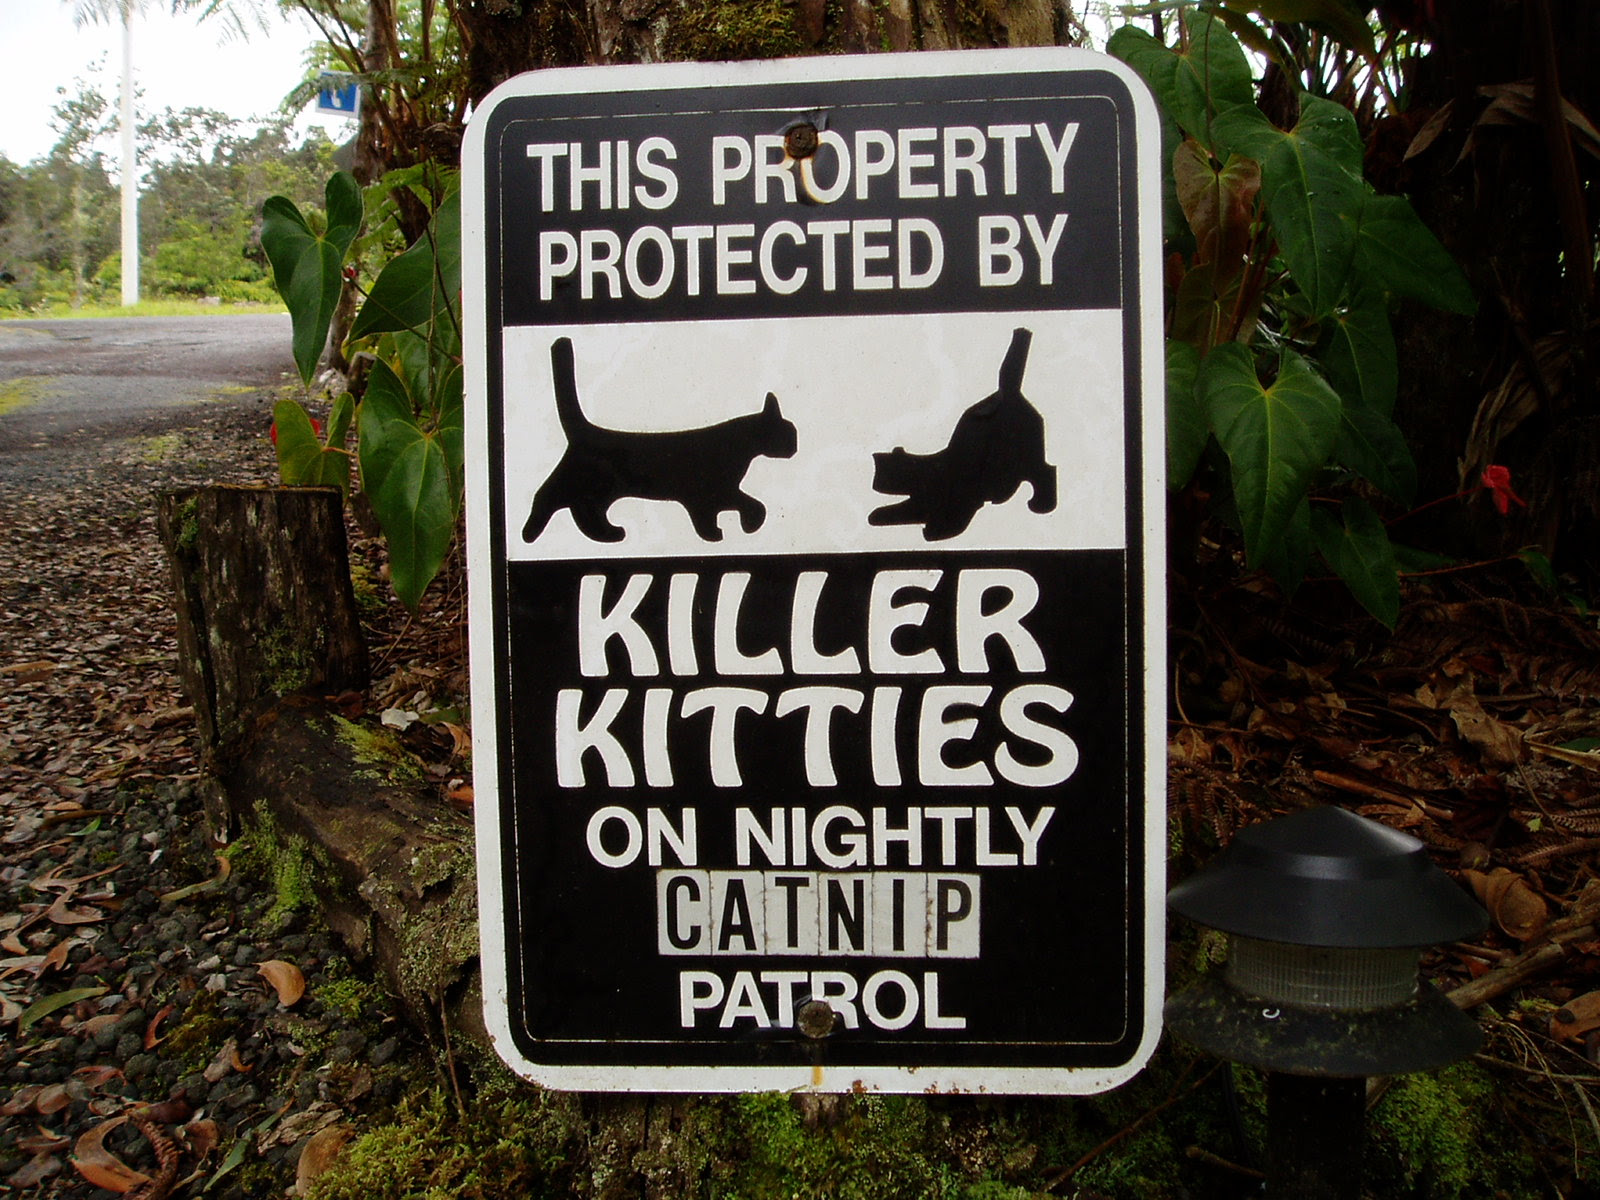 This property protected by killer kitties on nightly catnip patrol